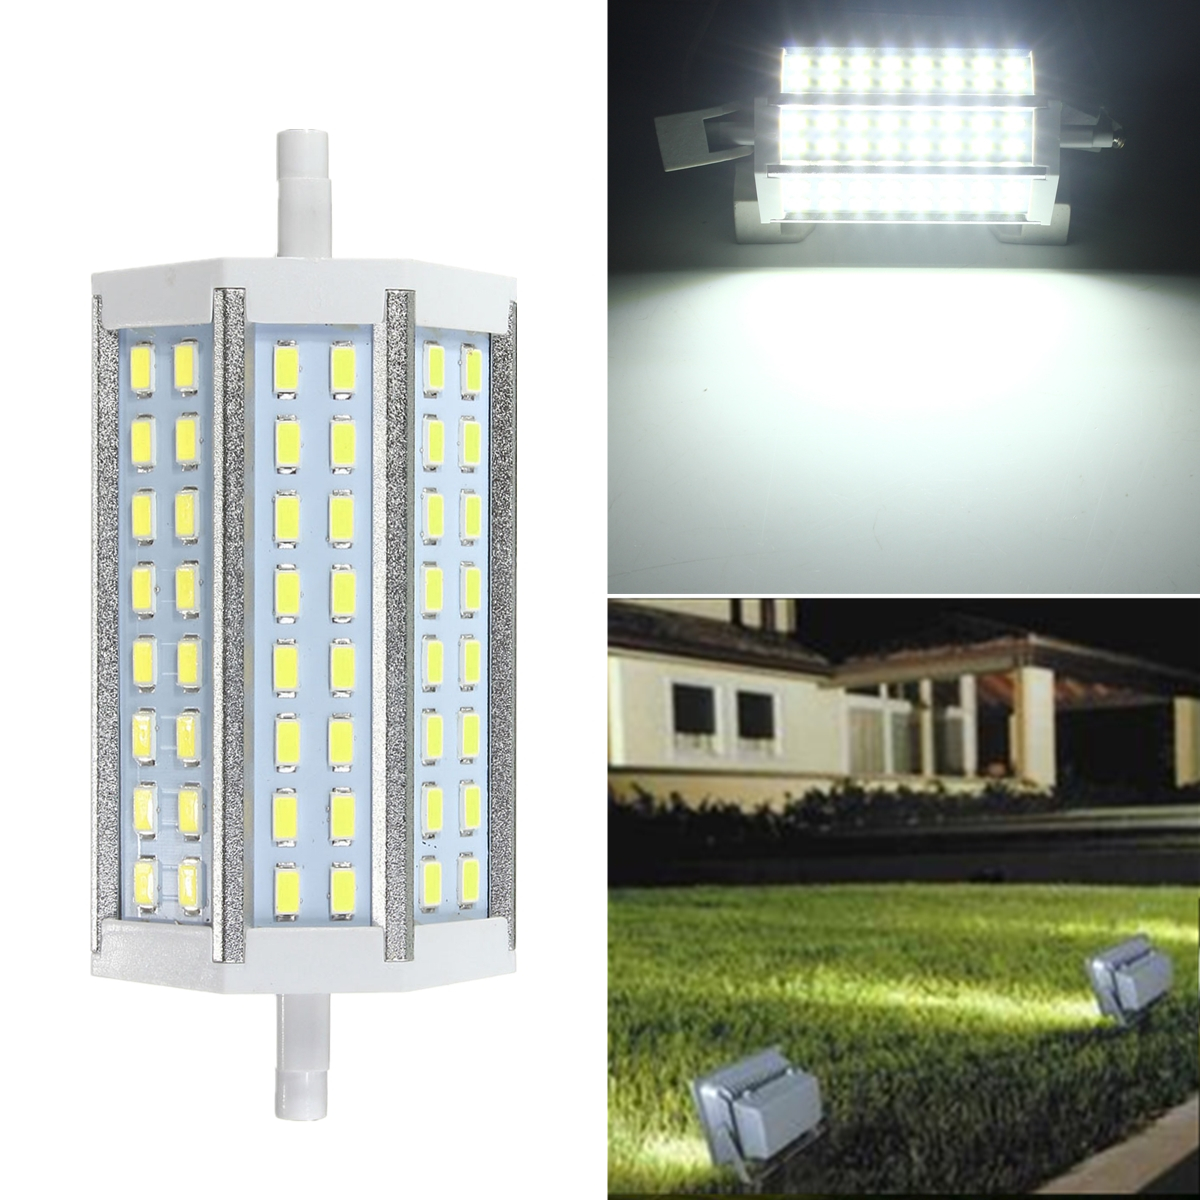 r7s 118mm 15w 48 smd 5730 led lampe strahler stab fluter. Black Bedroom Furniture Sets. Home Design Ideas